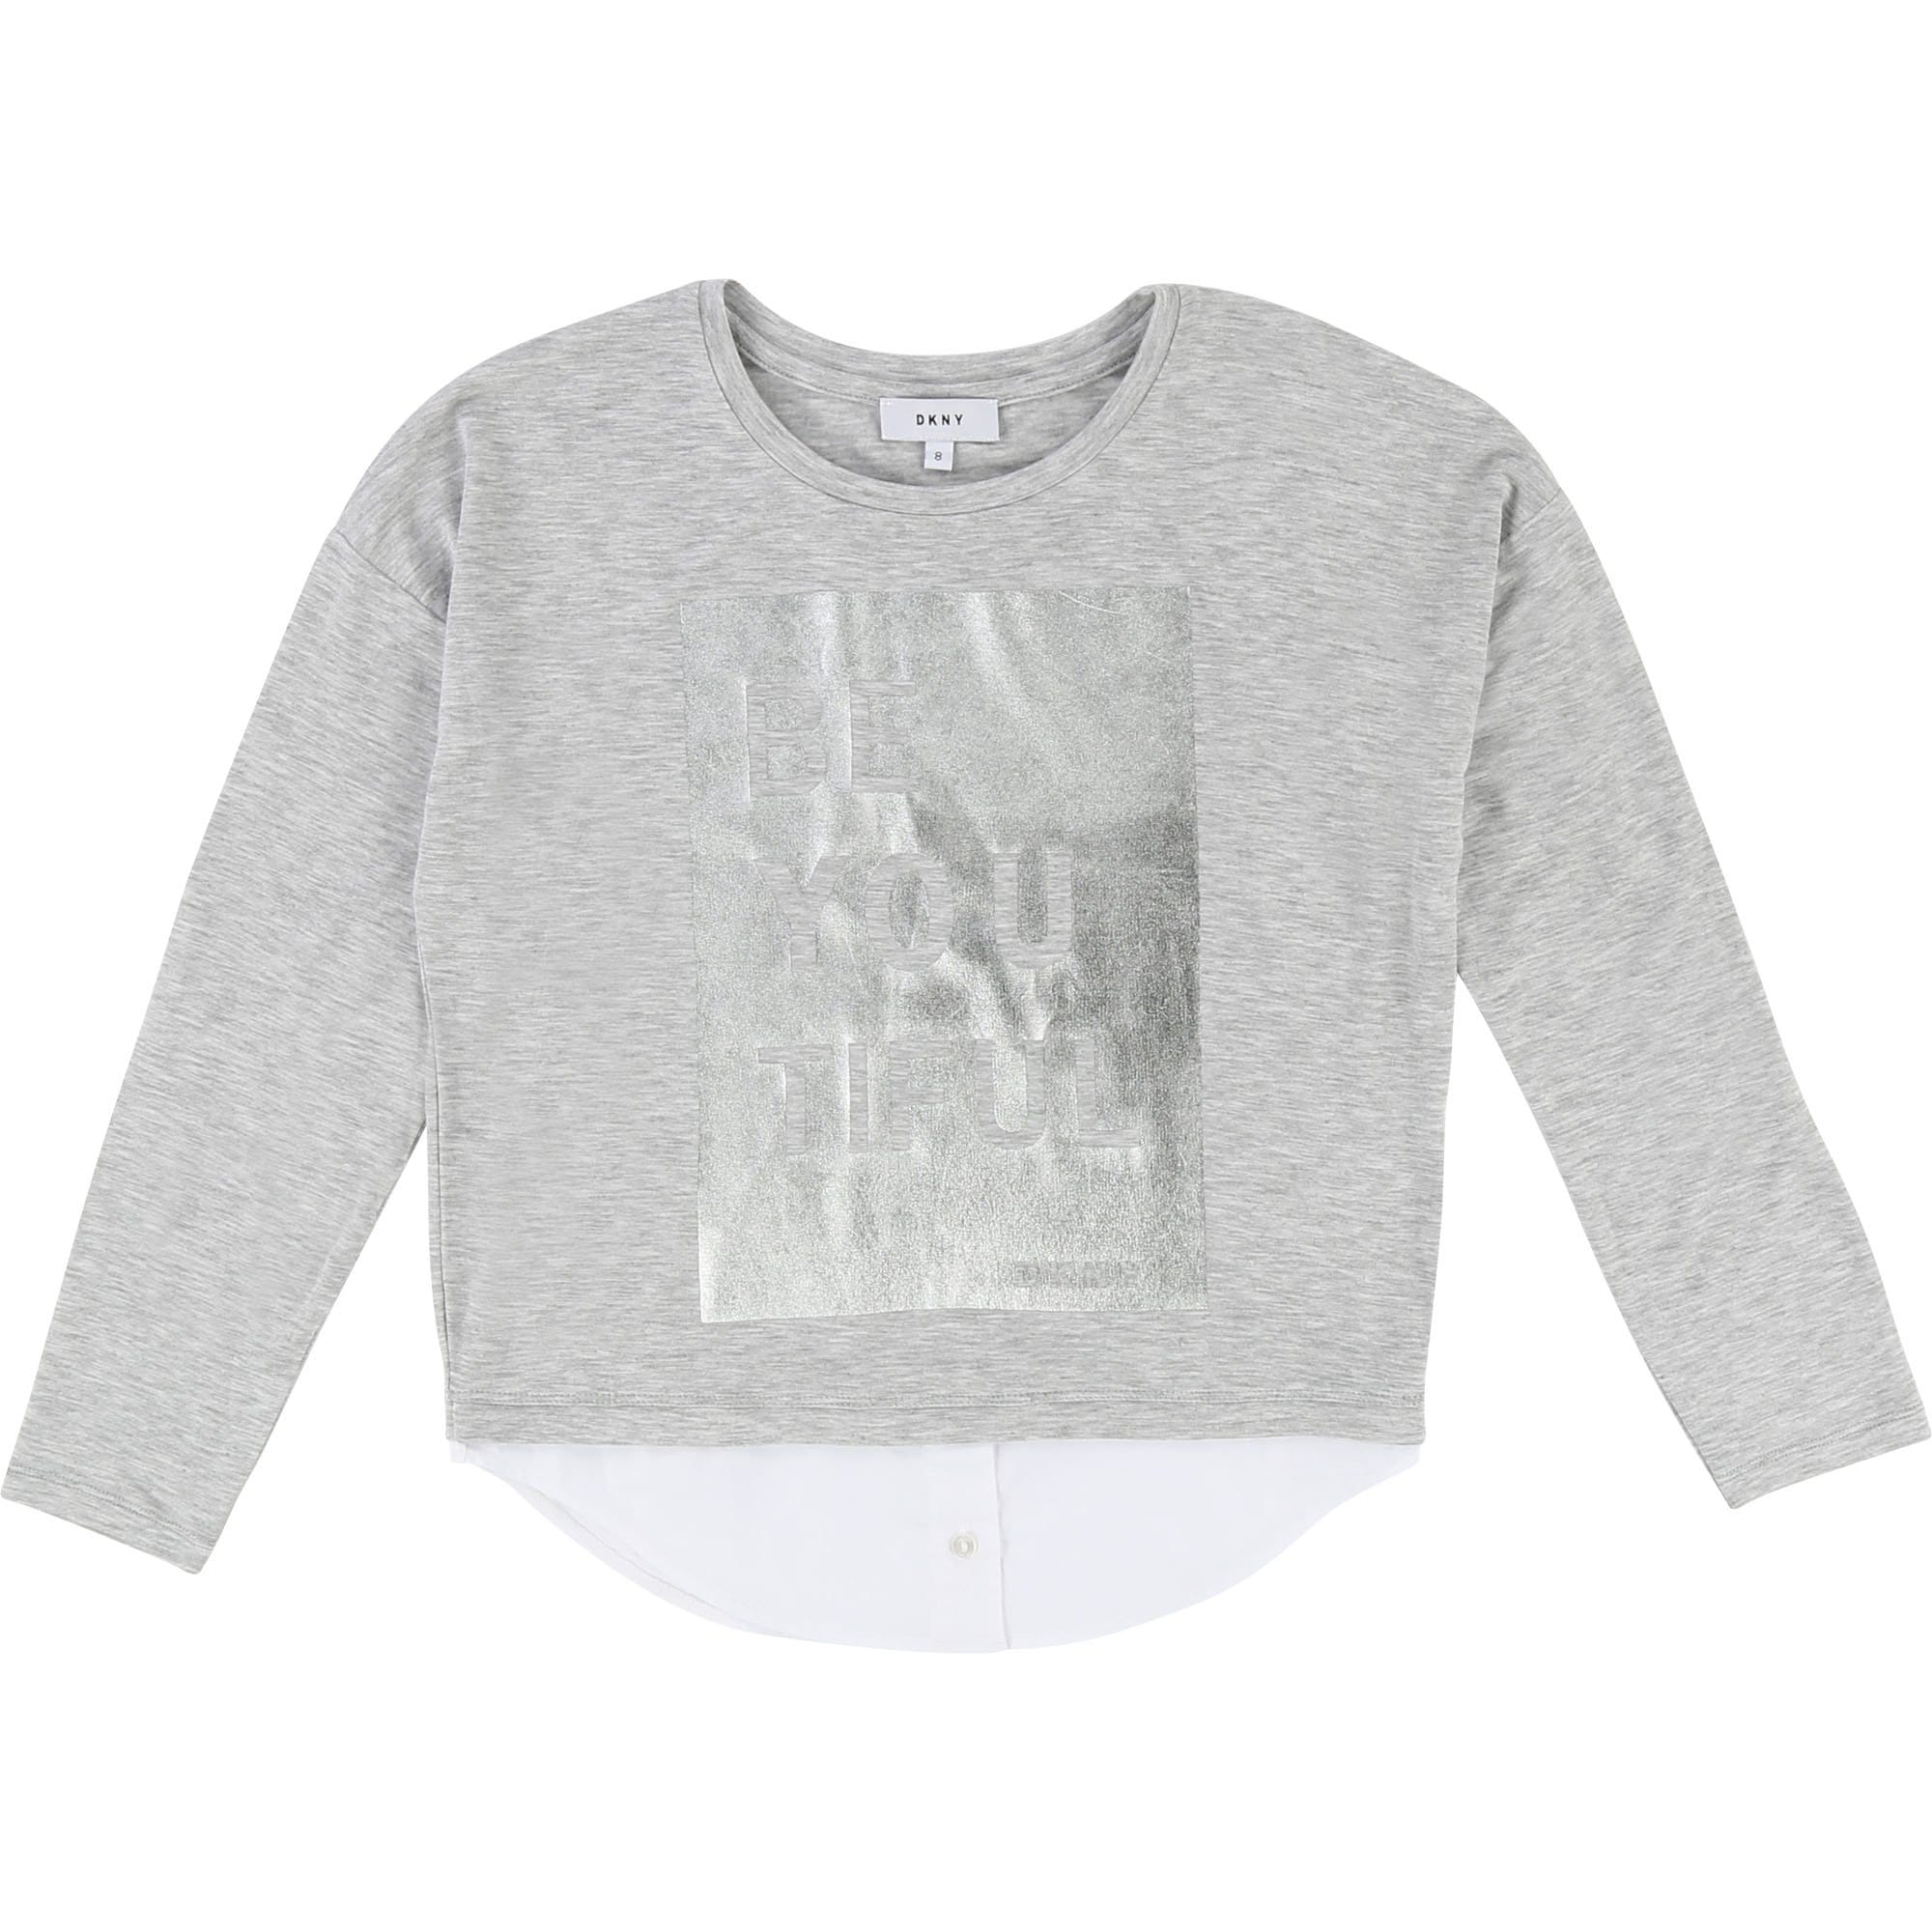 DKNY Long Sleeve T-Shirt